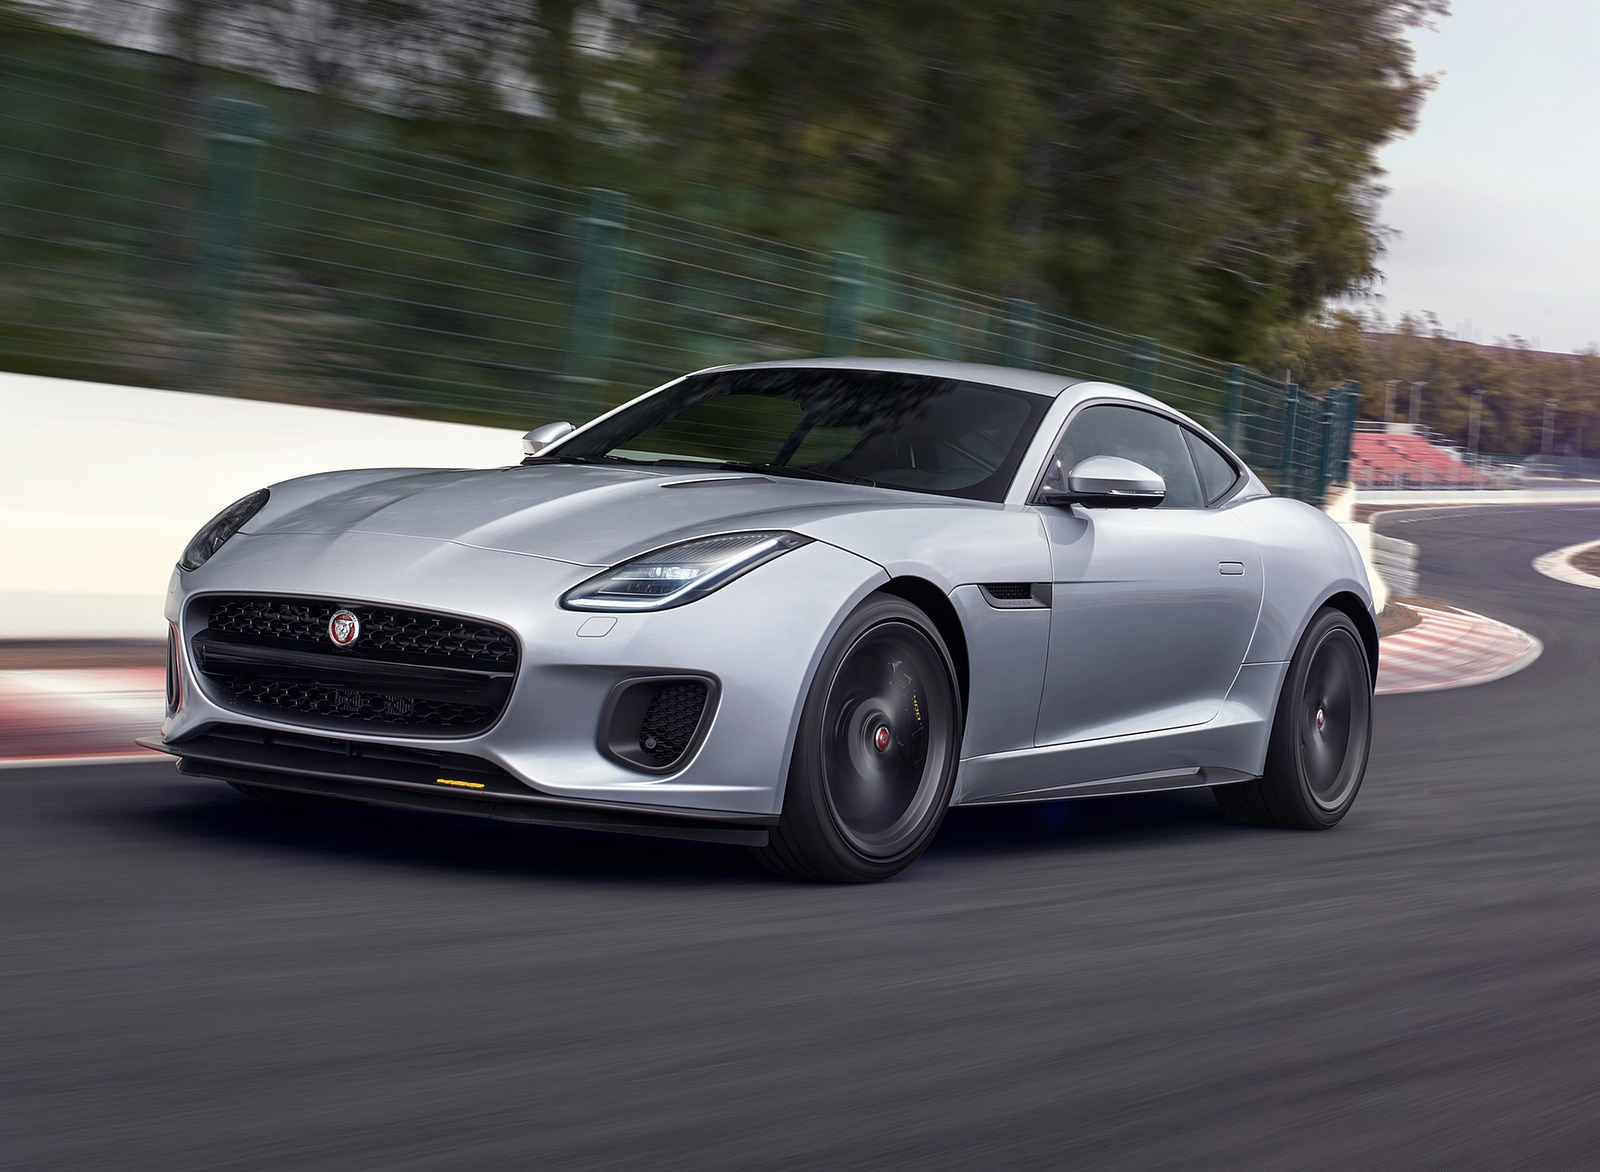 2018 Jaguar F-TYPE 400 SPORT Coupe Front Three-Quarter Wallpapers (15)